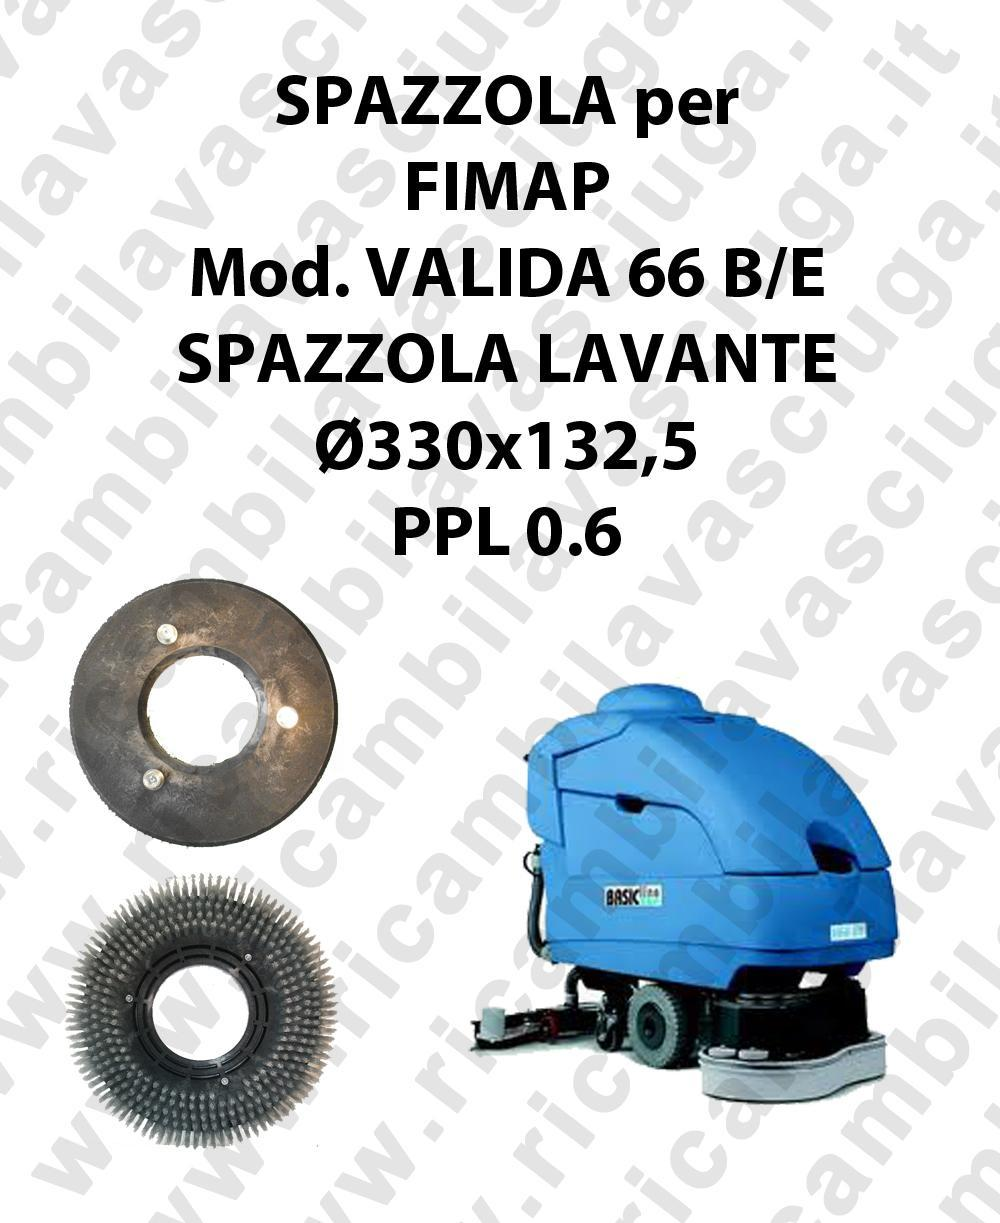 STANDARD BRUSH  for scrubber dryer FIMAP model VALIDA 66 ⌀ 330 x 132.5 PPL 0.6